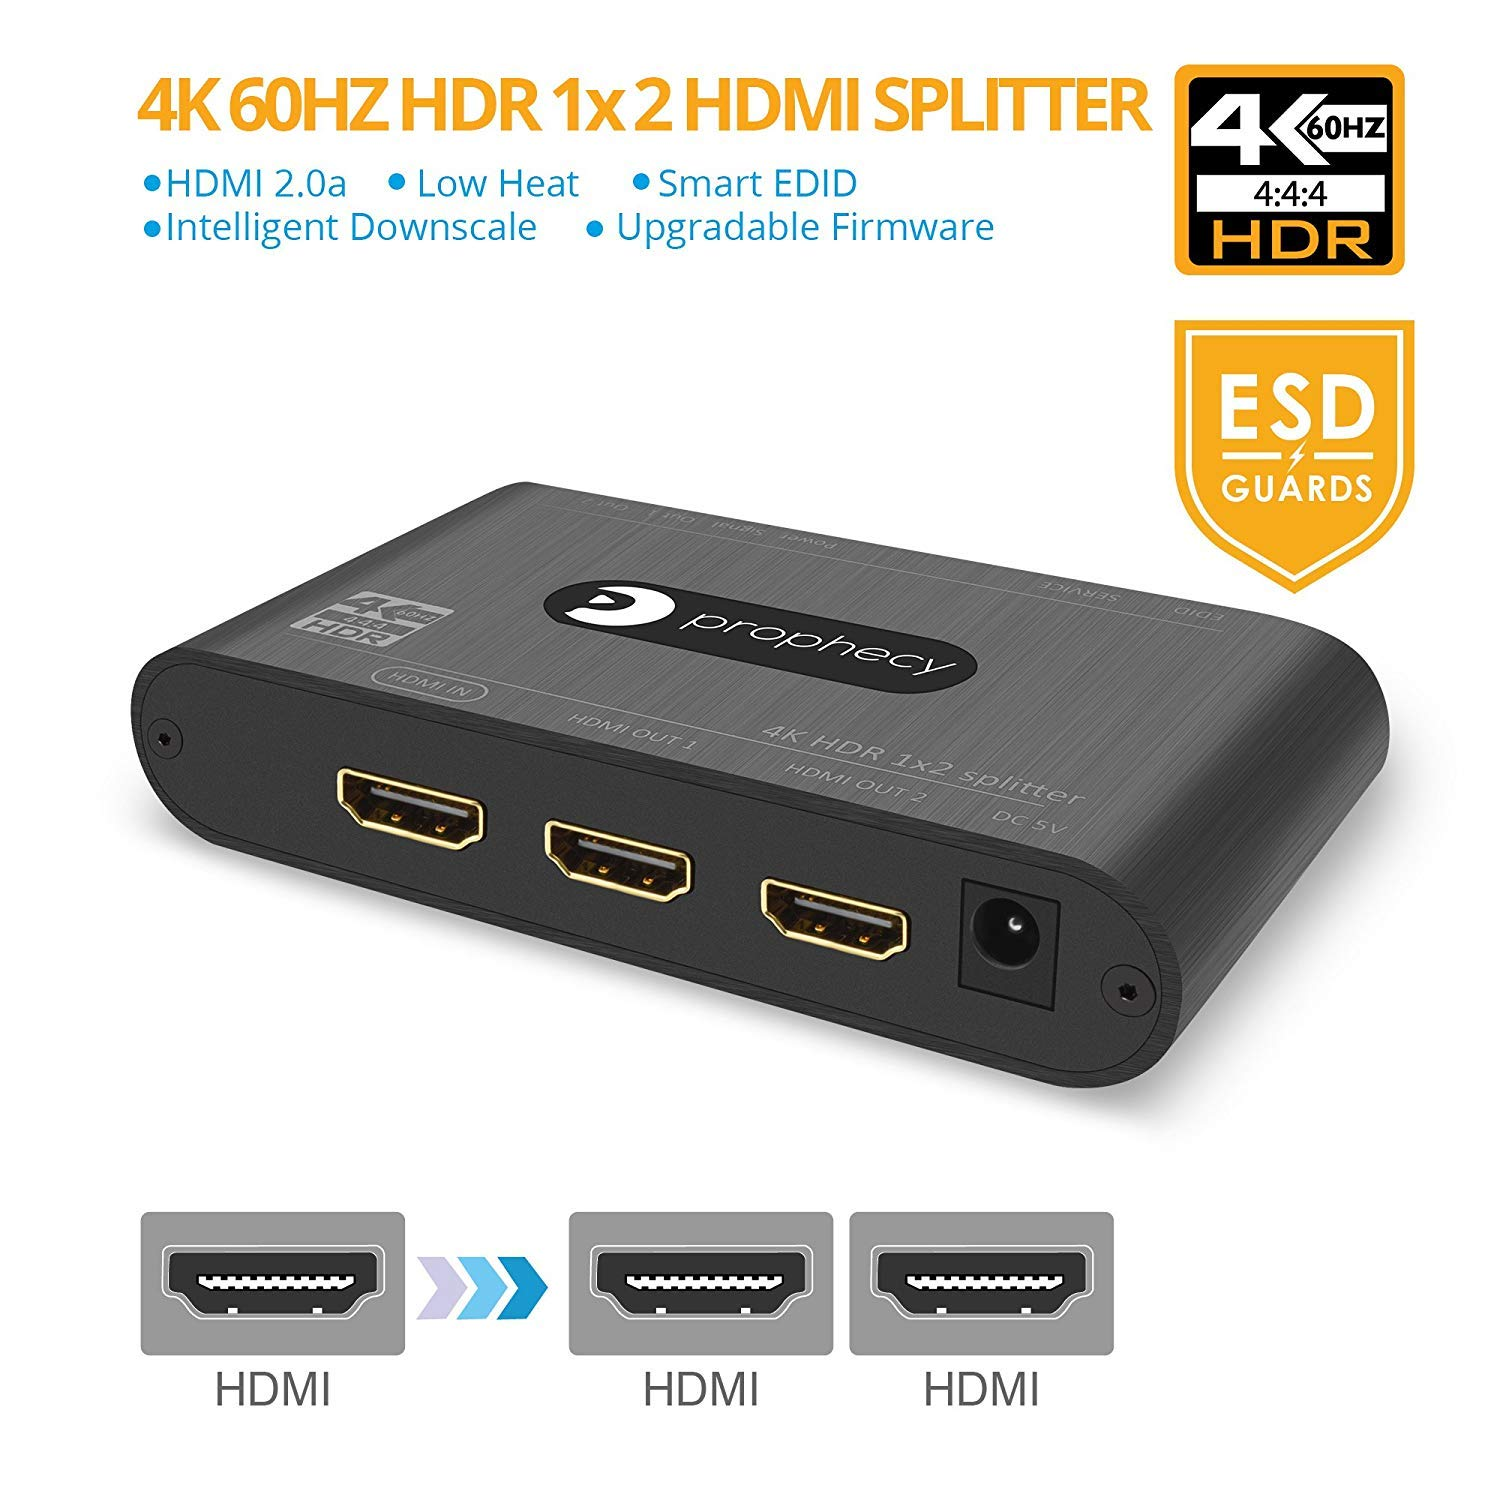 gofanco Prophecy Intelligent 4K 60Hz HDR 1x2 HDMI 2 0 Splitter ? YUV 4:4:4,  3D, HDMI 2 0a, HDCP 2 2, EDID, 18Gbps, Auto Scaling, Low Heat, Cascadable,